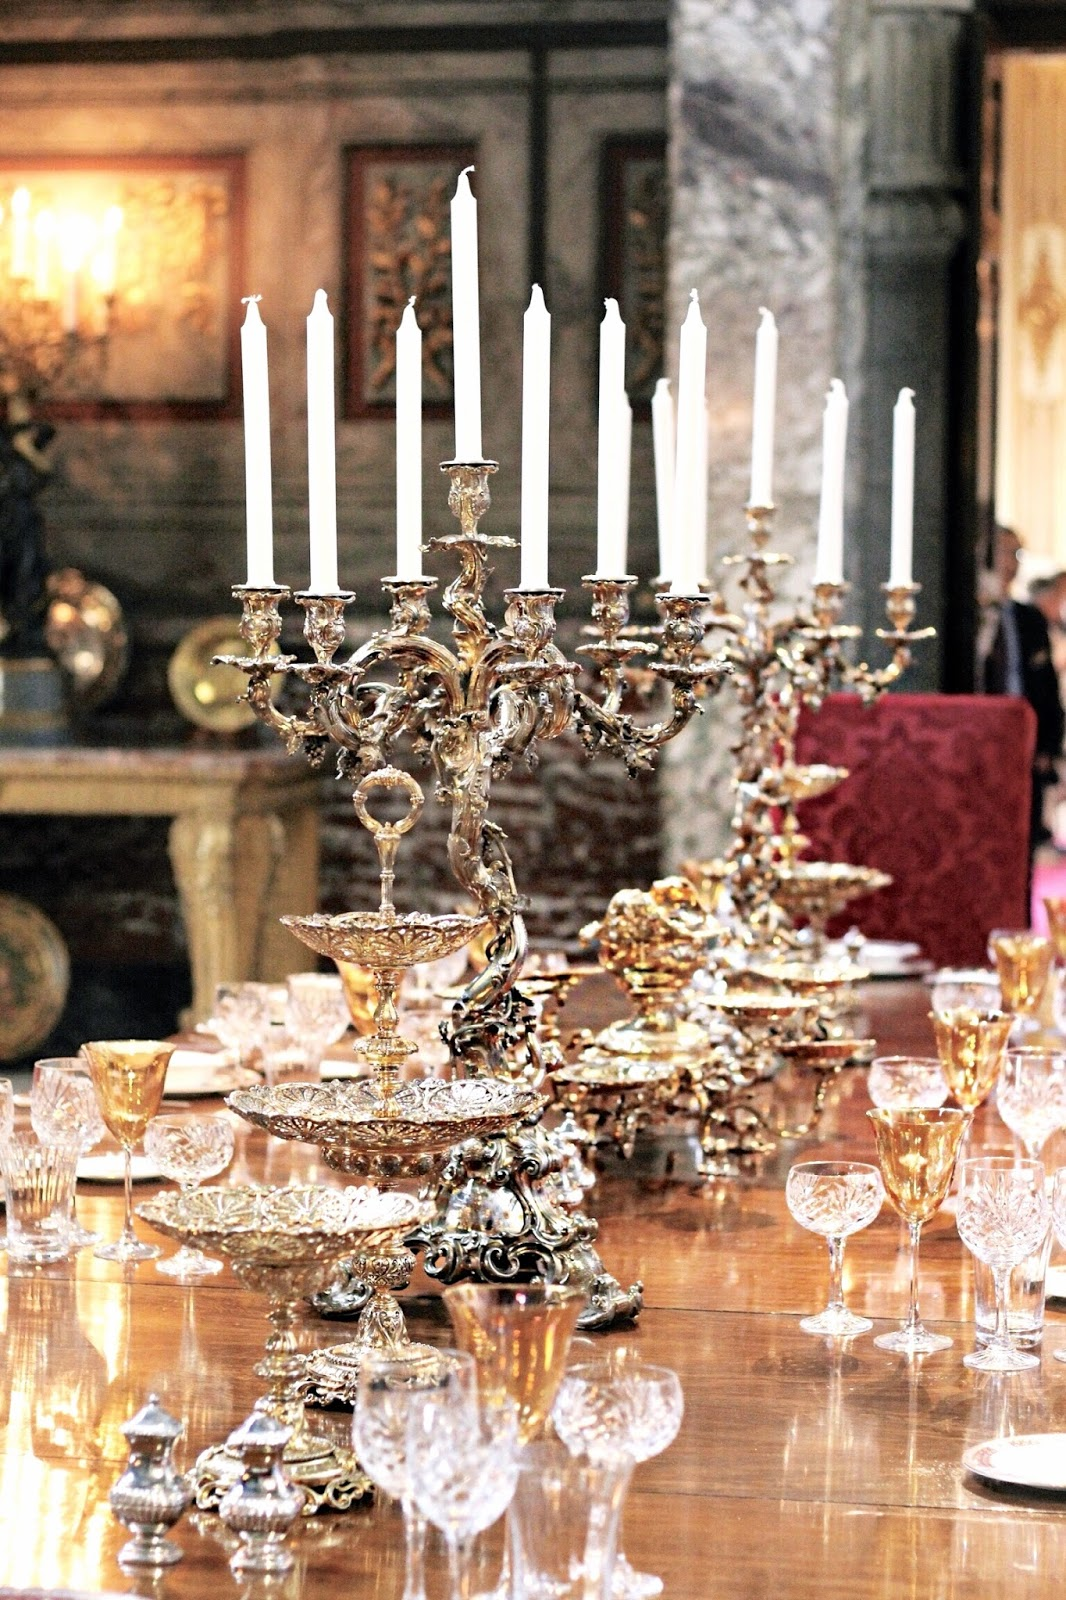 Blenheim Palace Dining Room